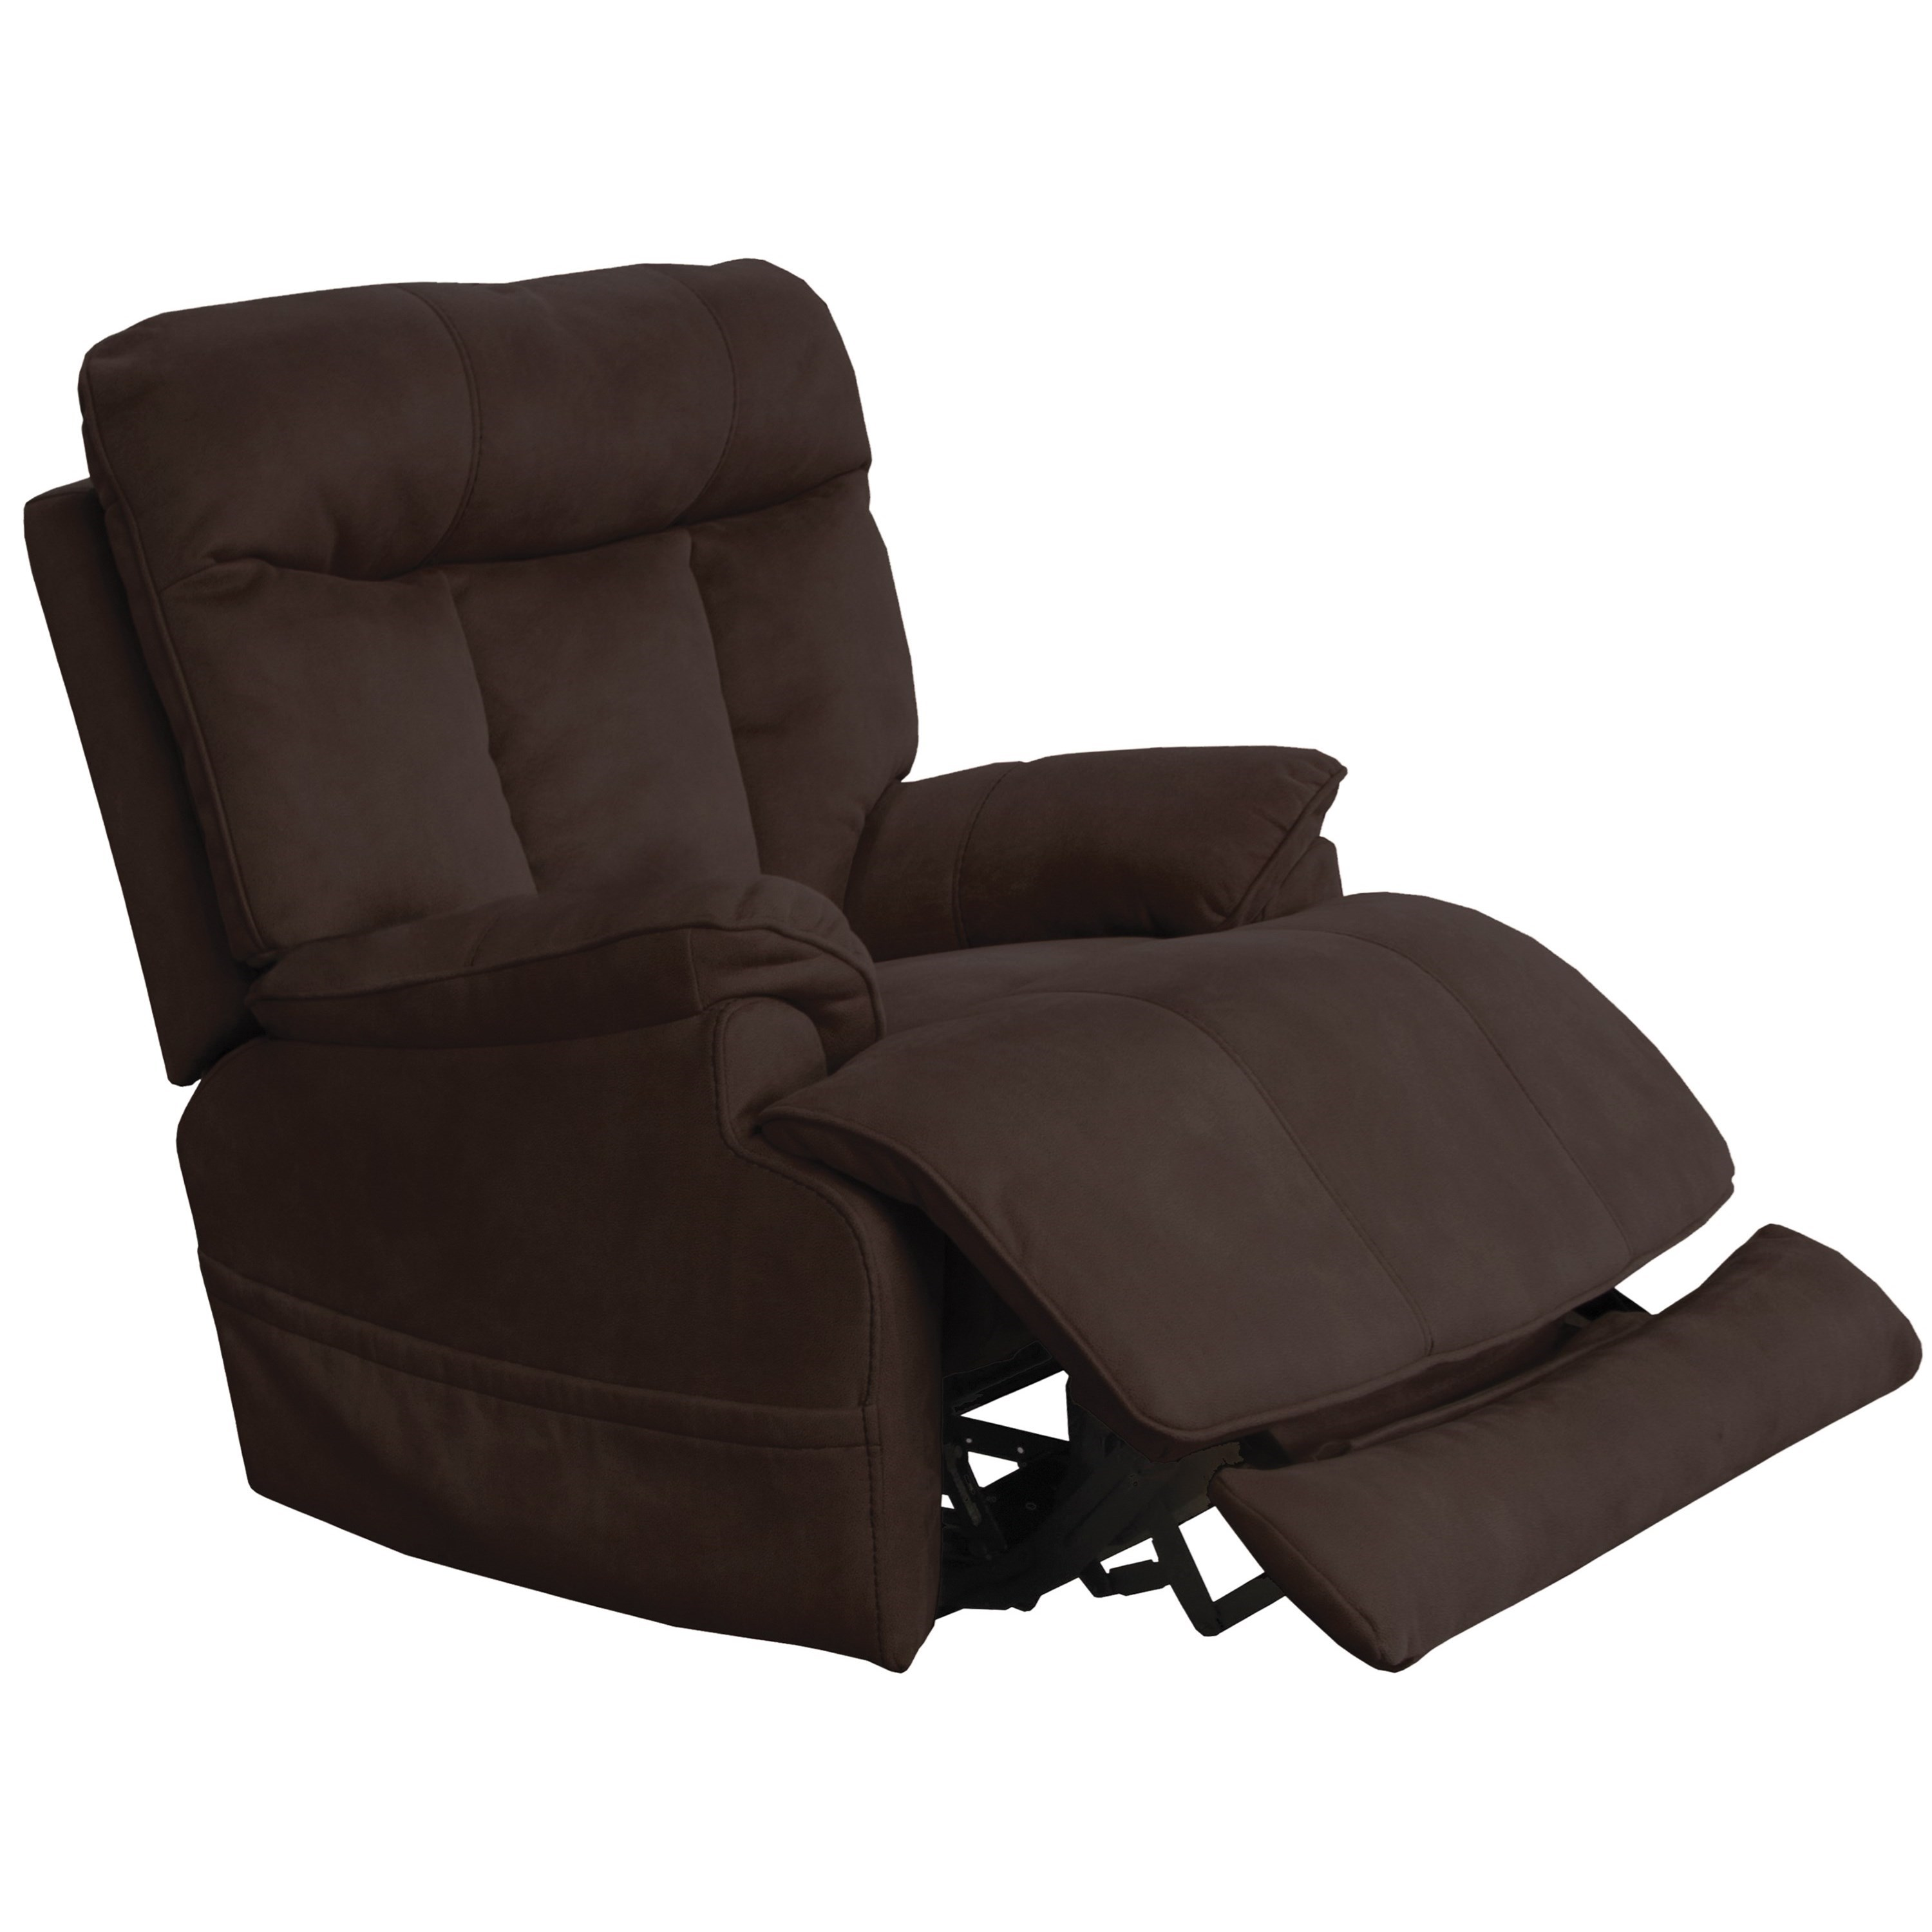 Anders Power Lay Flat Recliner by Catnapper at Zak's Warehouse Clearance Center